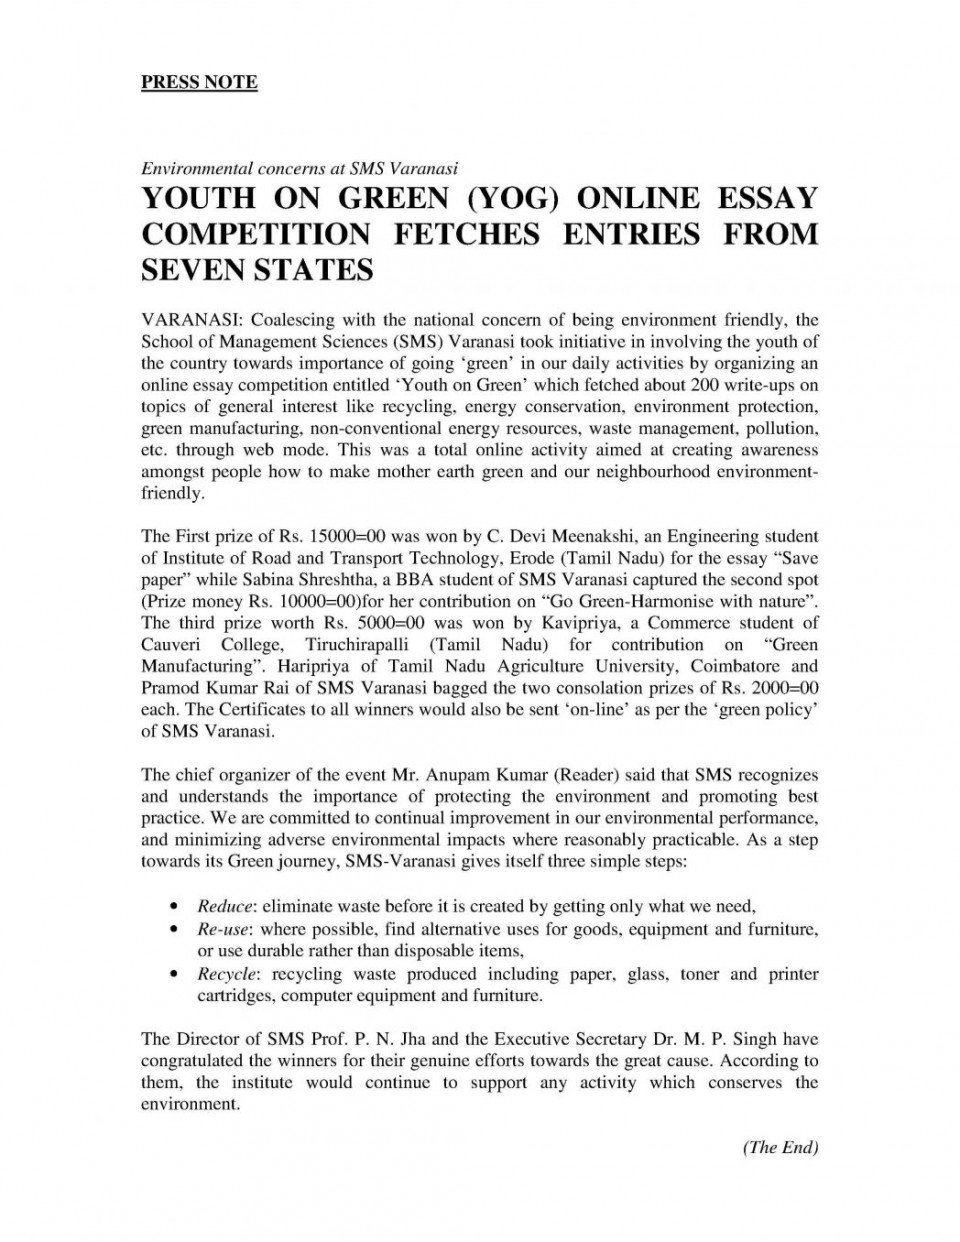 020 Best Essays For College Essay On Good Habits How Tot Application Online Yog Press Re About Yourself Examples Your Background Failure Prompt Off Hook 1048x1356 Example Amazing To Start An A Definition Begin With Dictionary 960